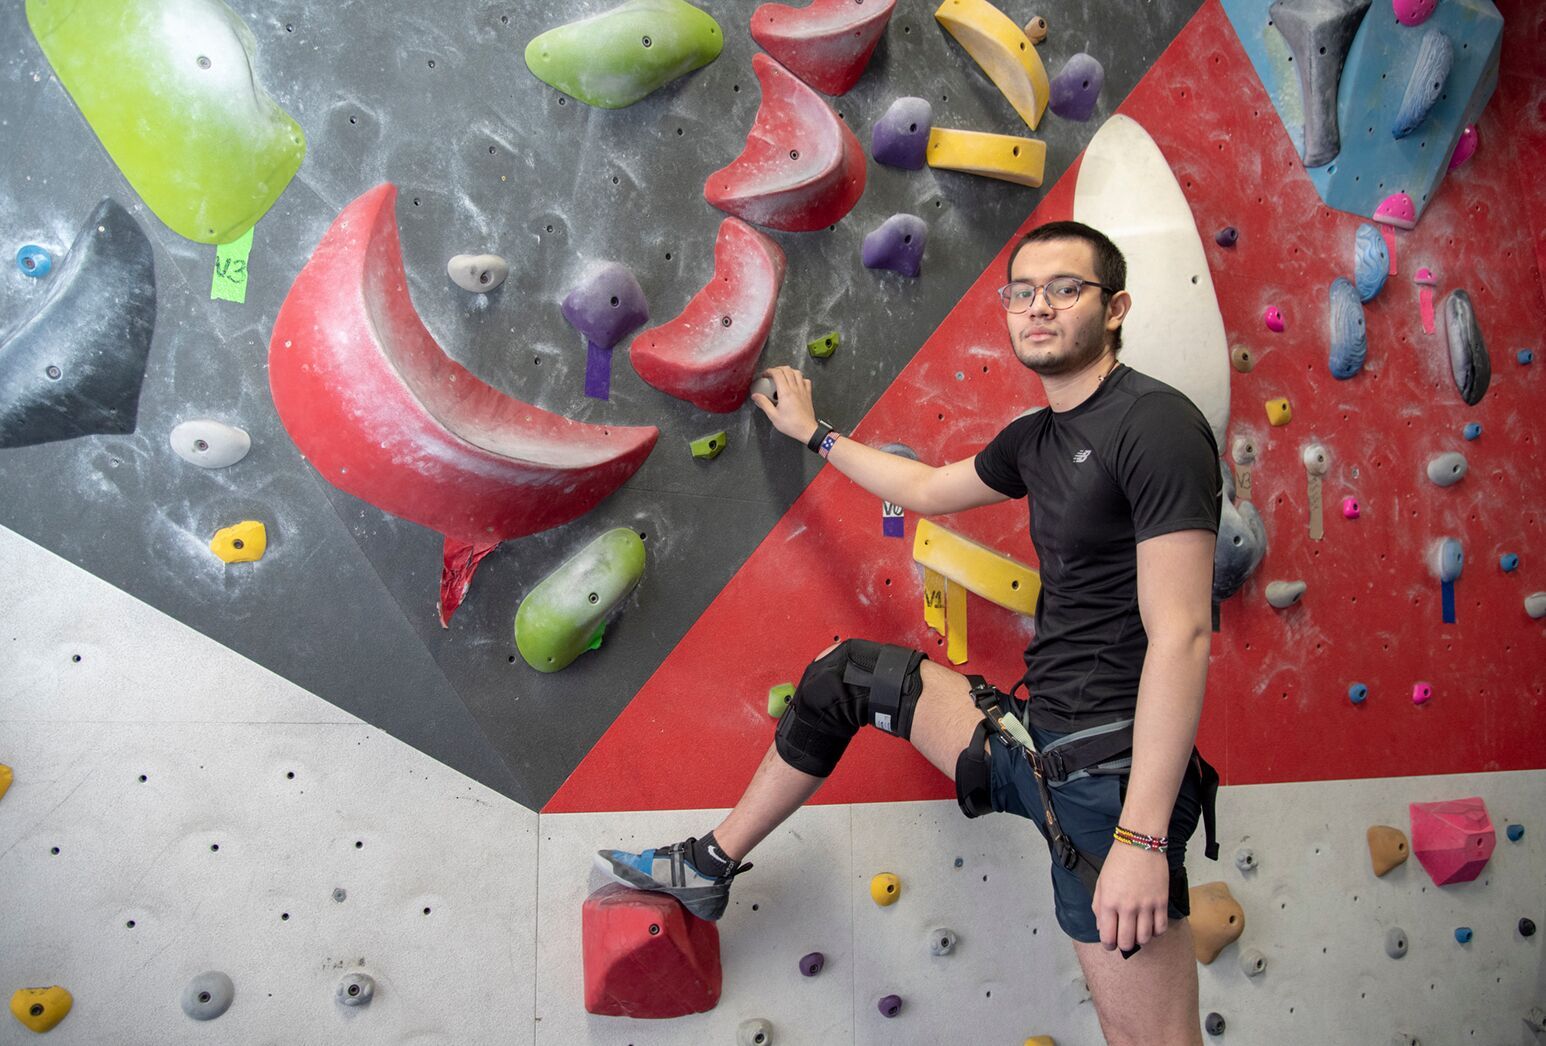 Young man in front of colorful climbing wall